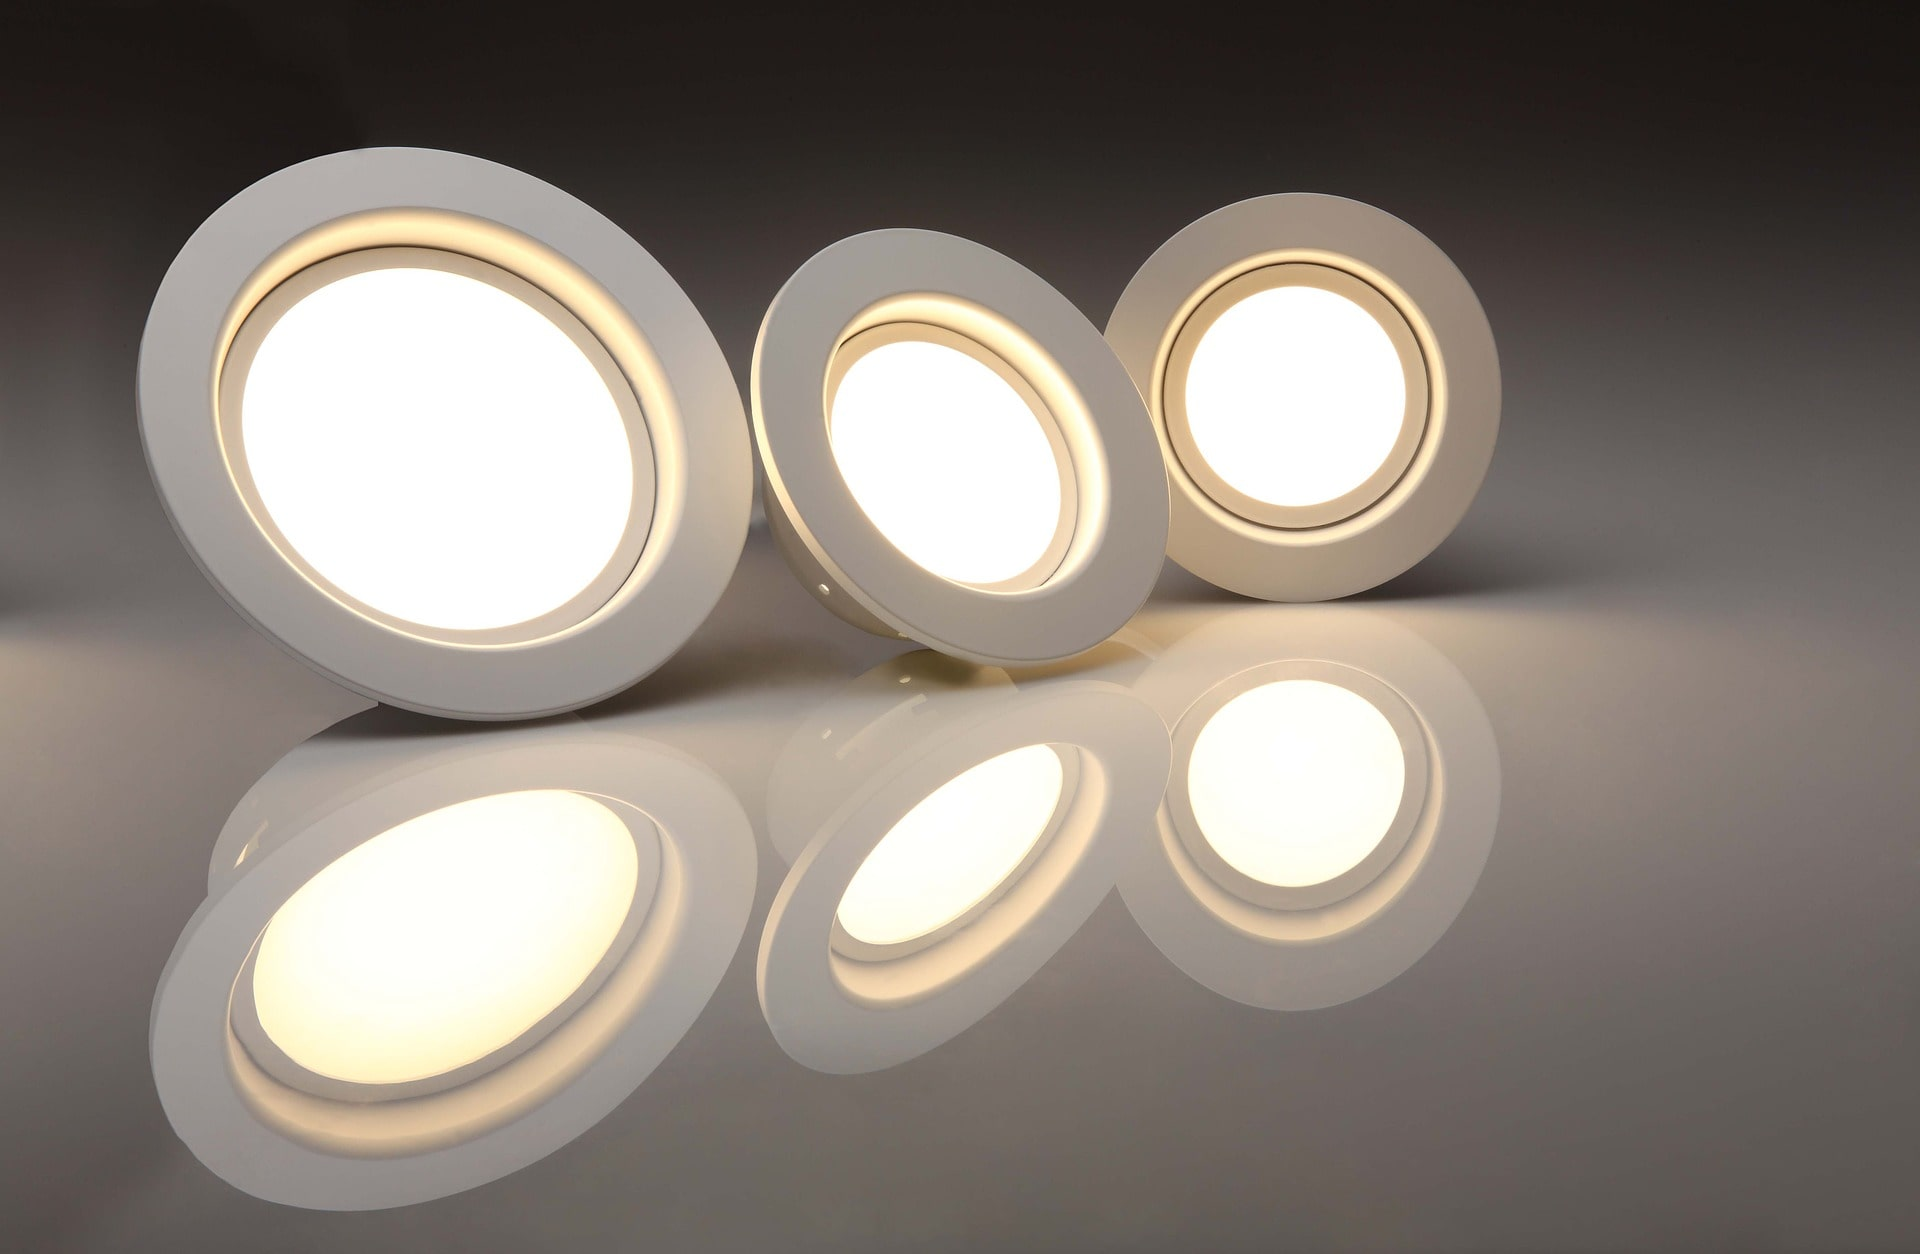 led lights to reduce home electricity consumption